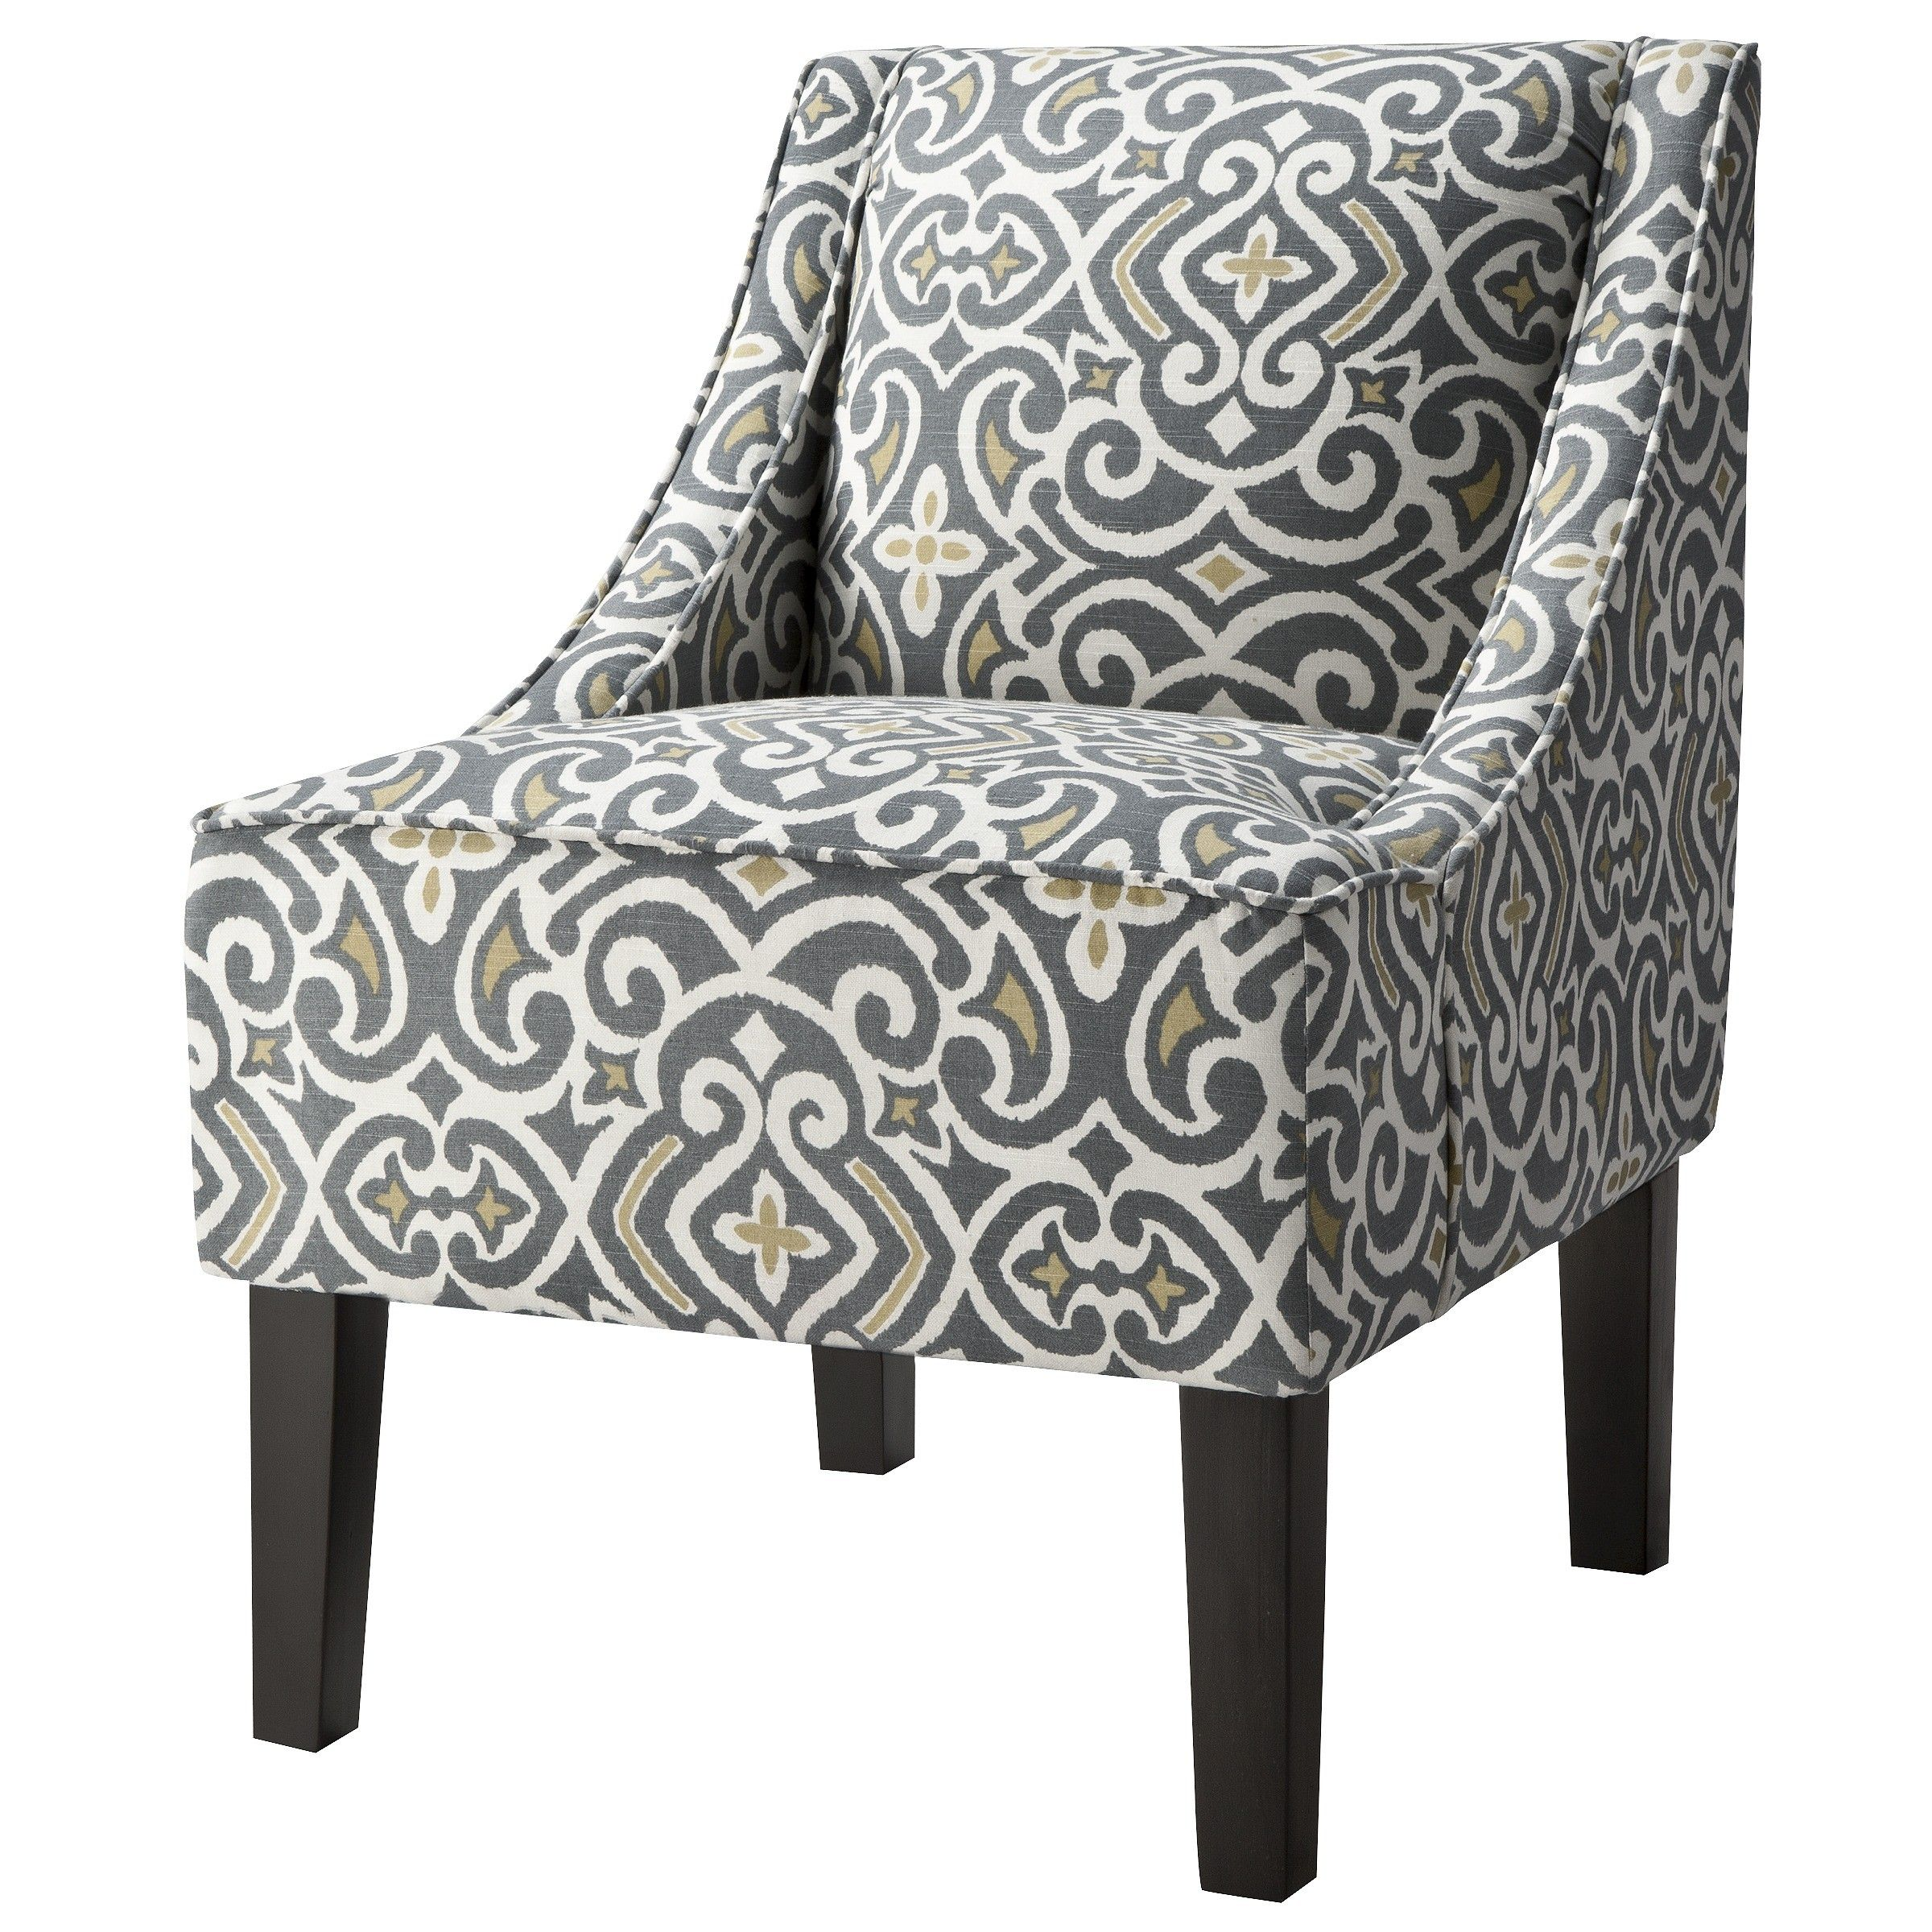 Missoni Style Print Accent Chair: Hudson Swoop Arm Chair - Gray Floral - Threshold™